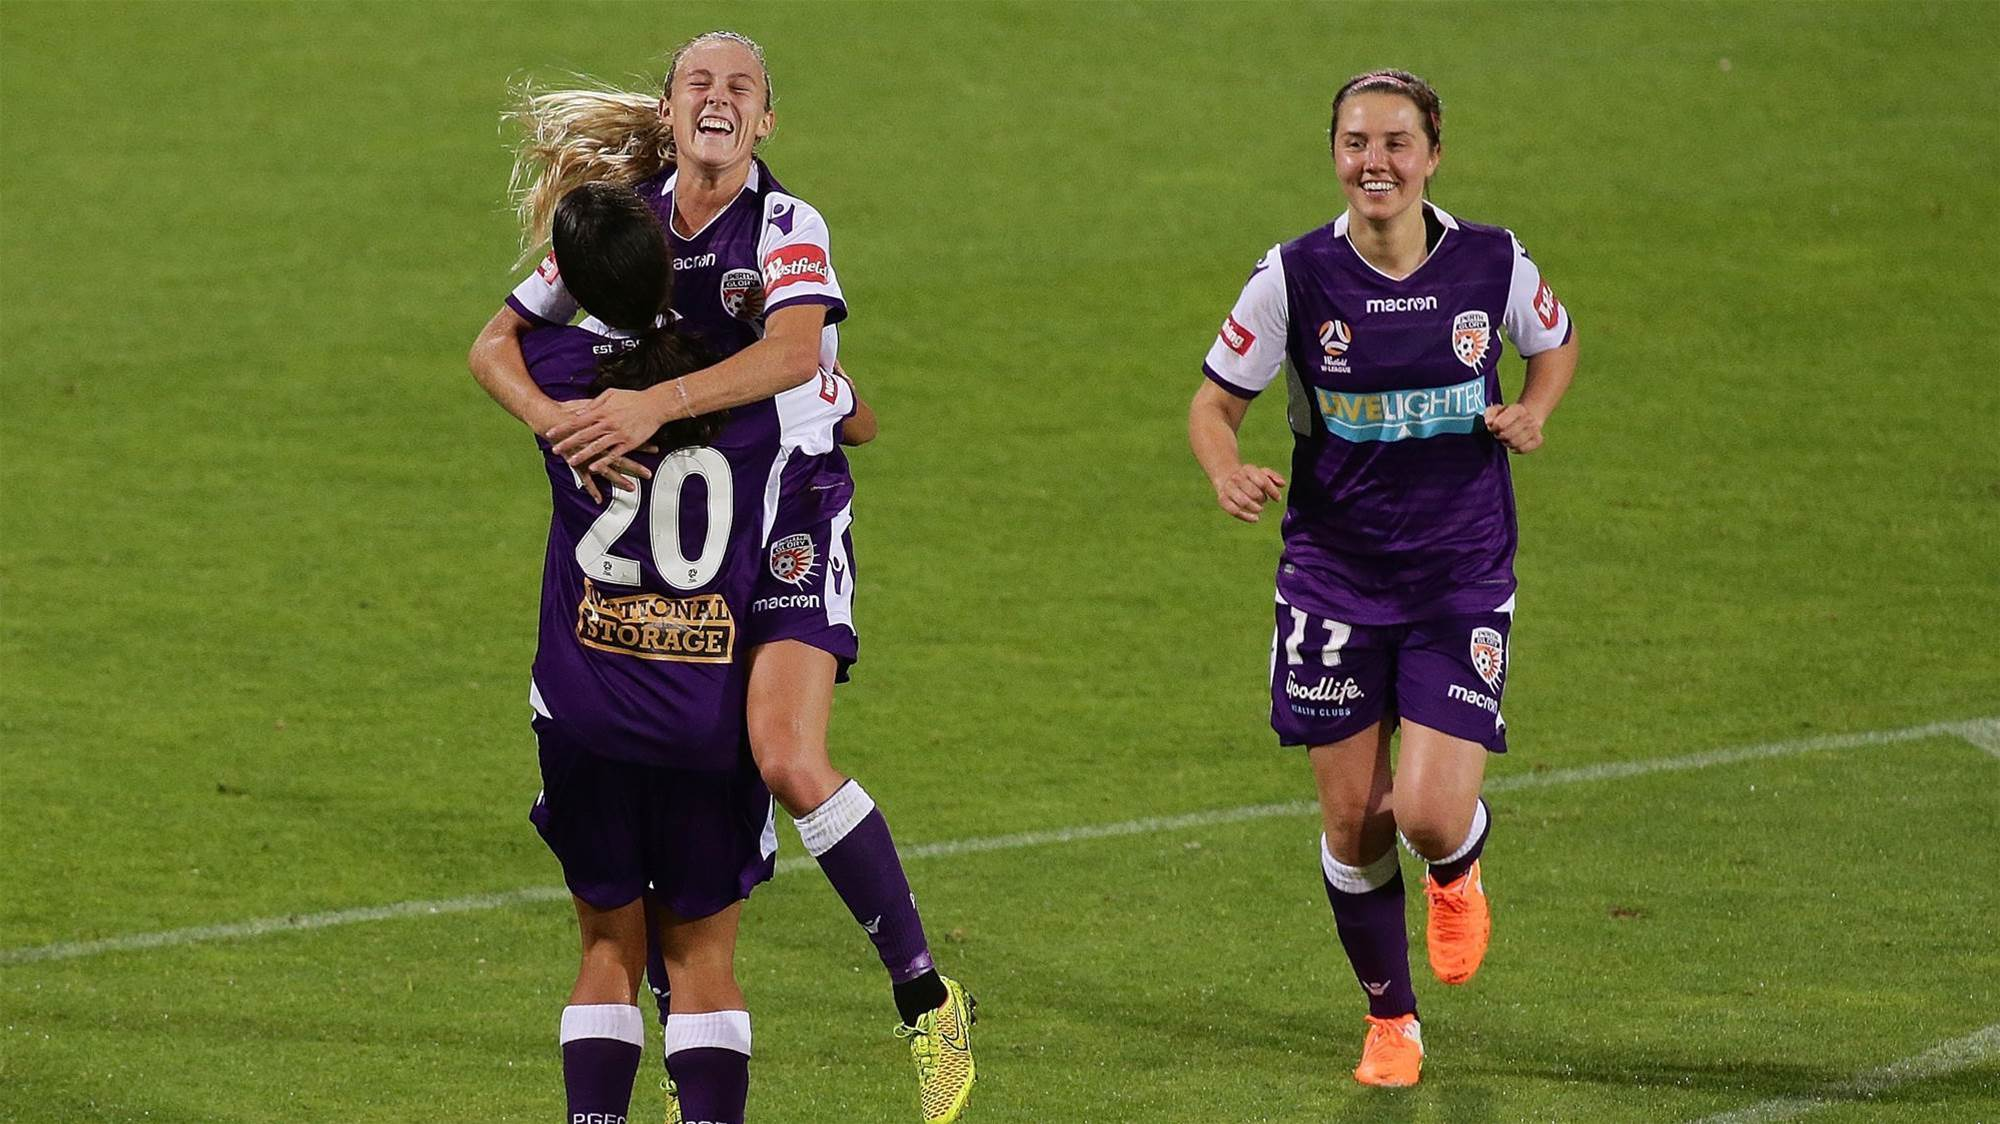 W-League first round wrap up